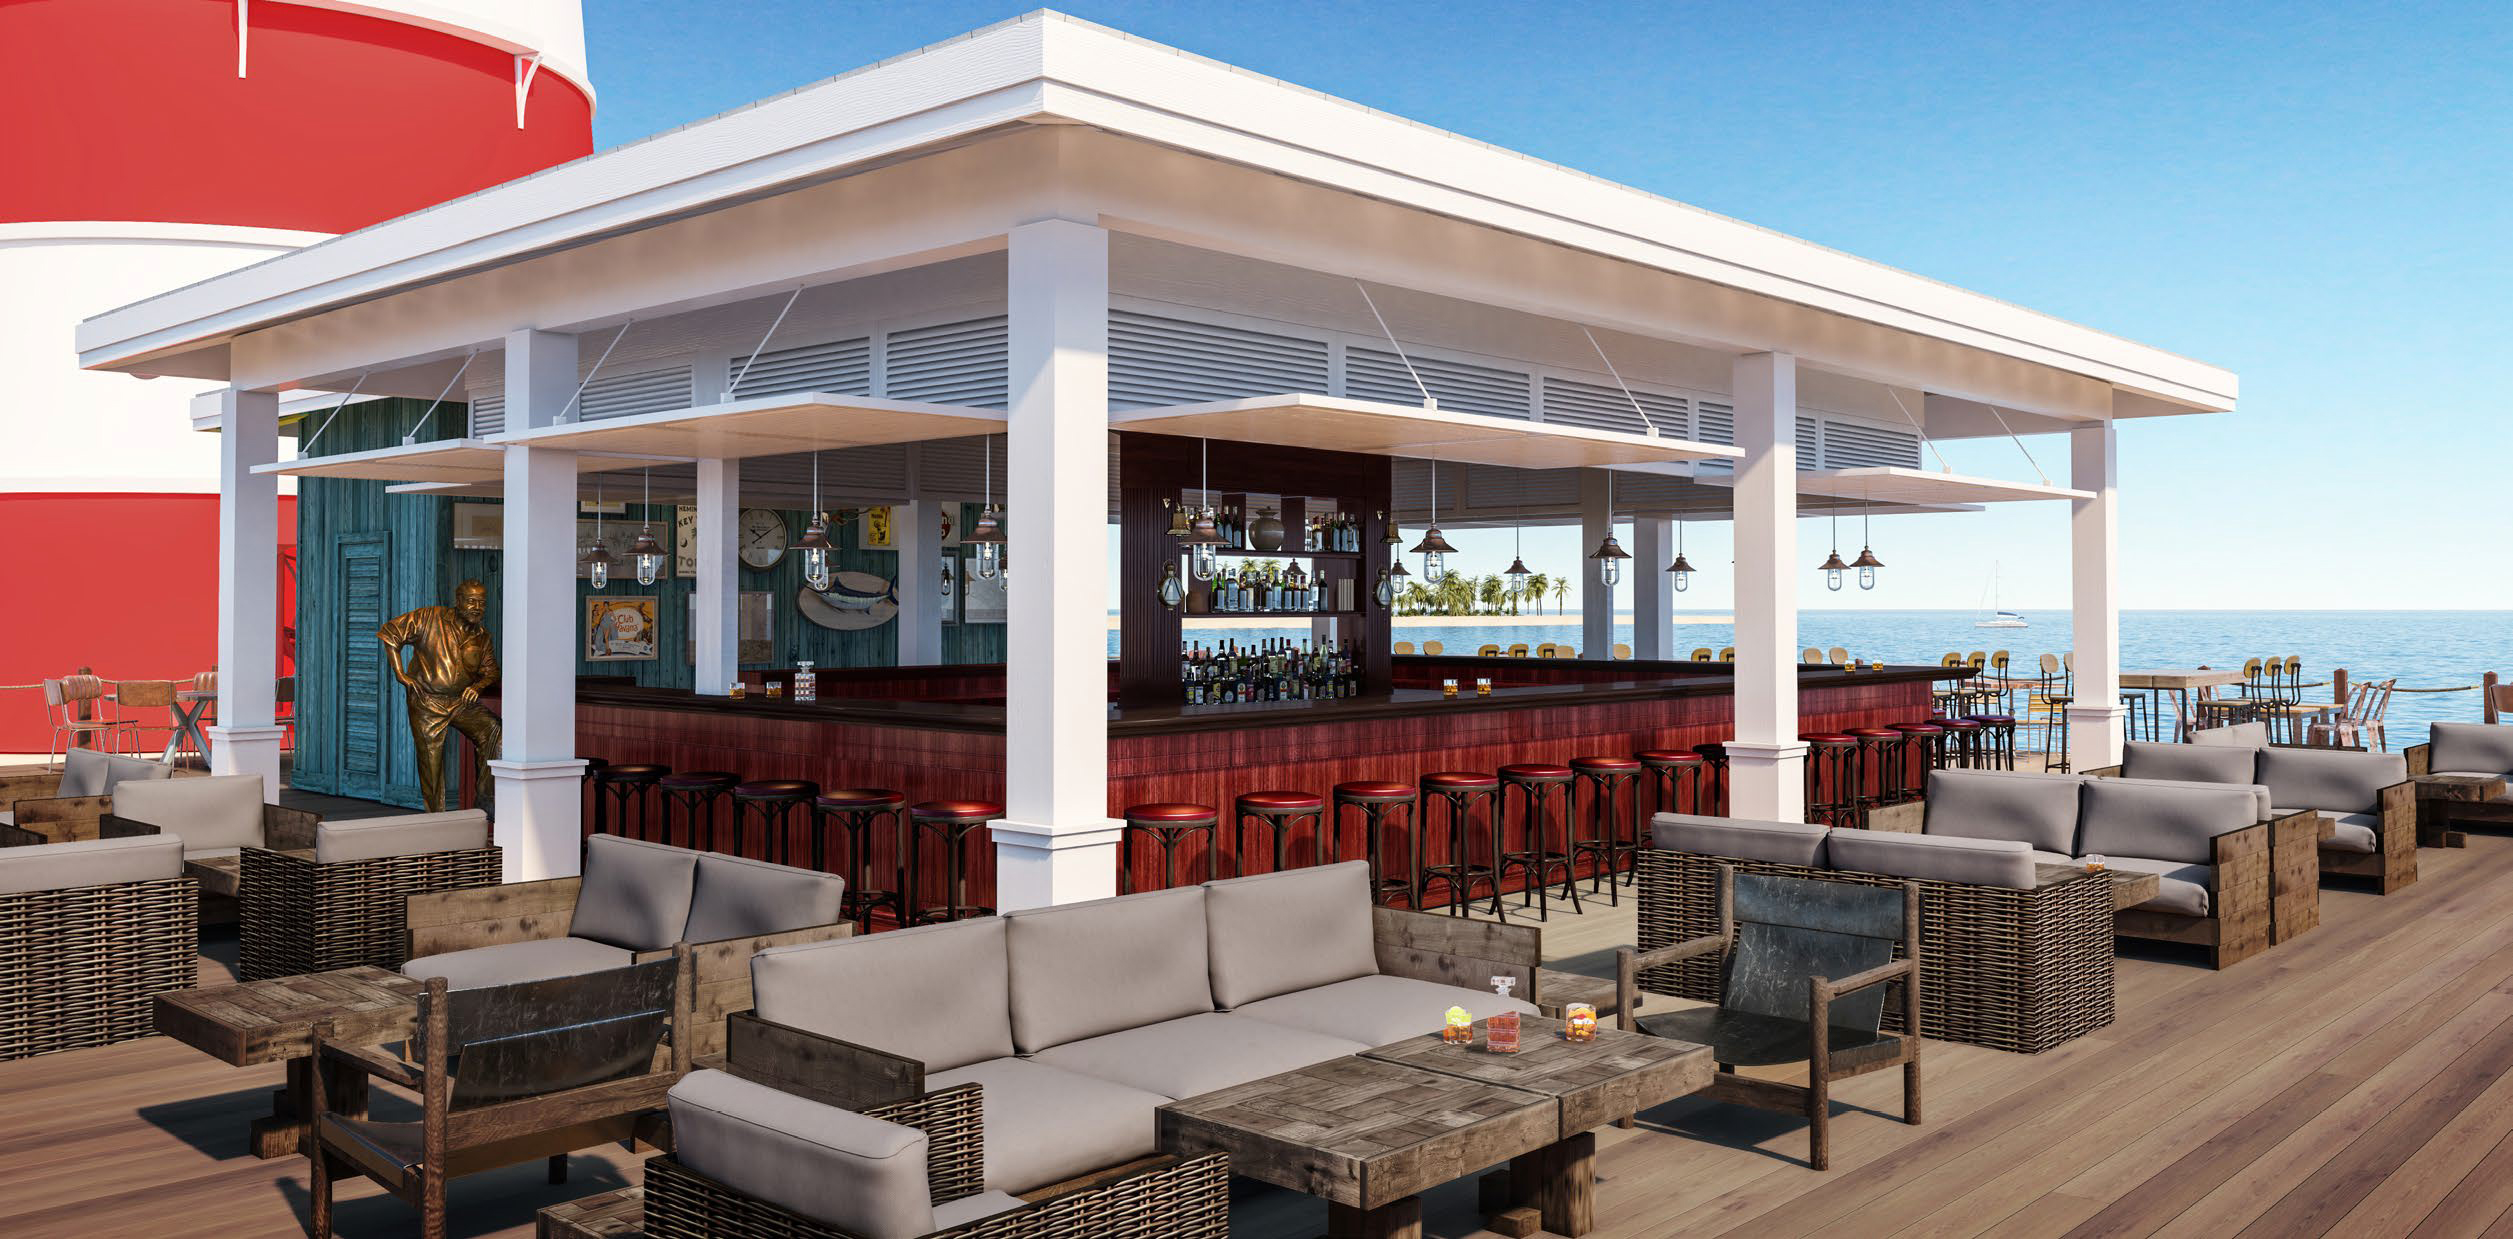 MSC Ocean Cay Marine Reserve render of a bar on island